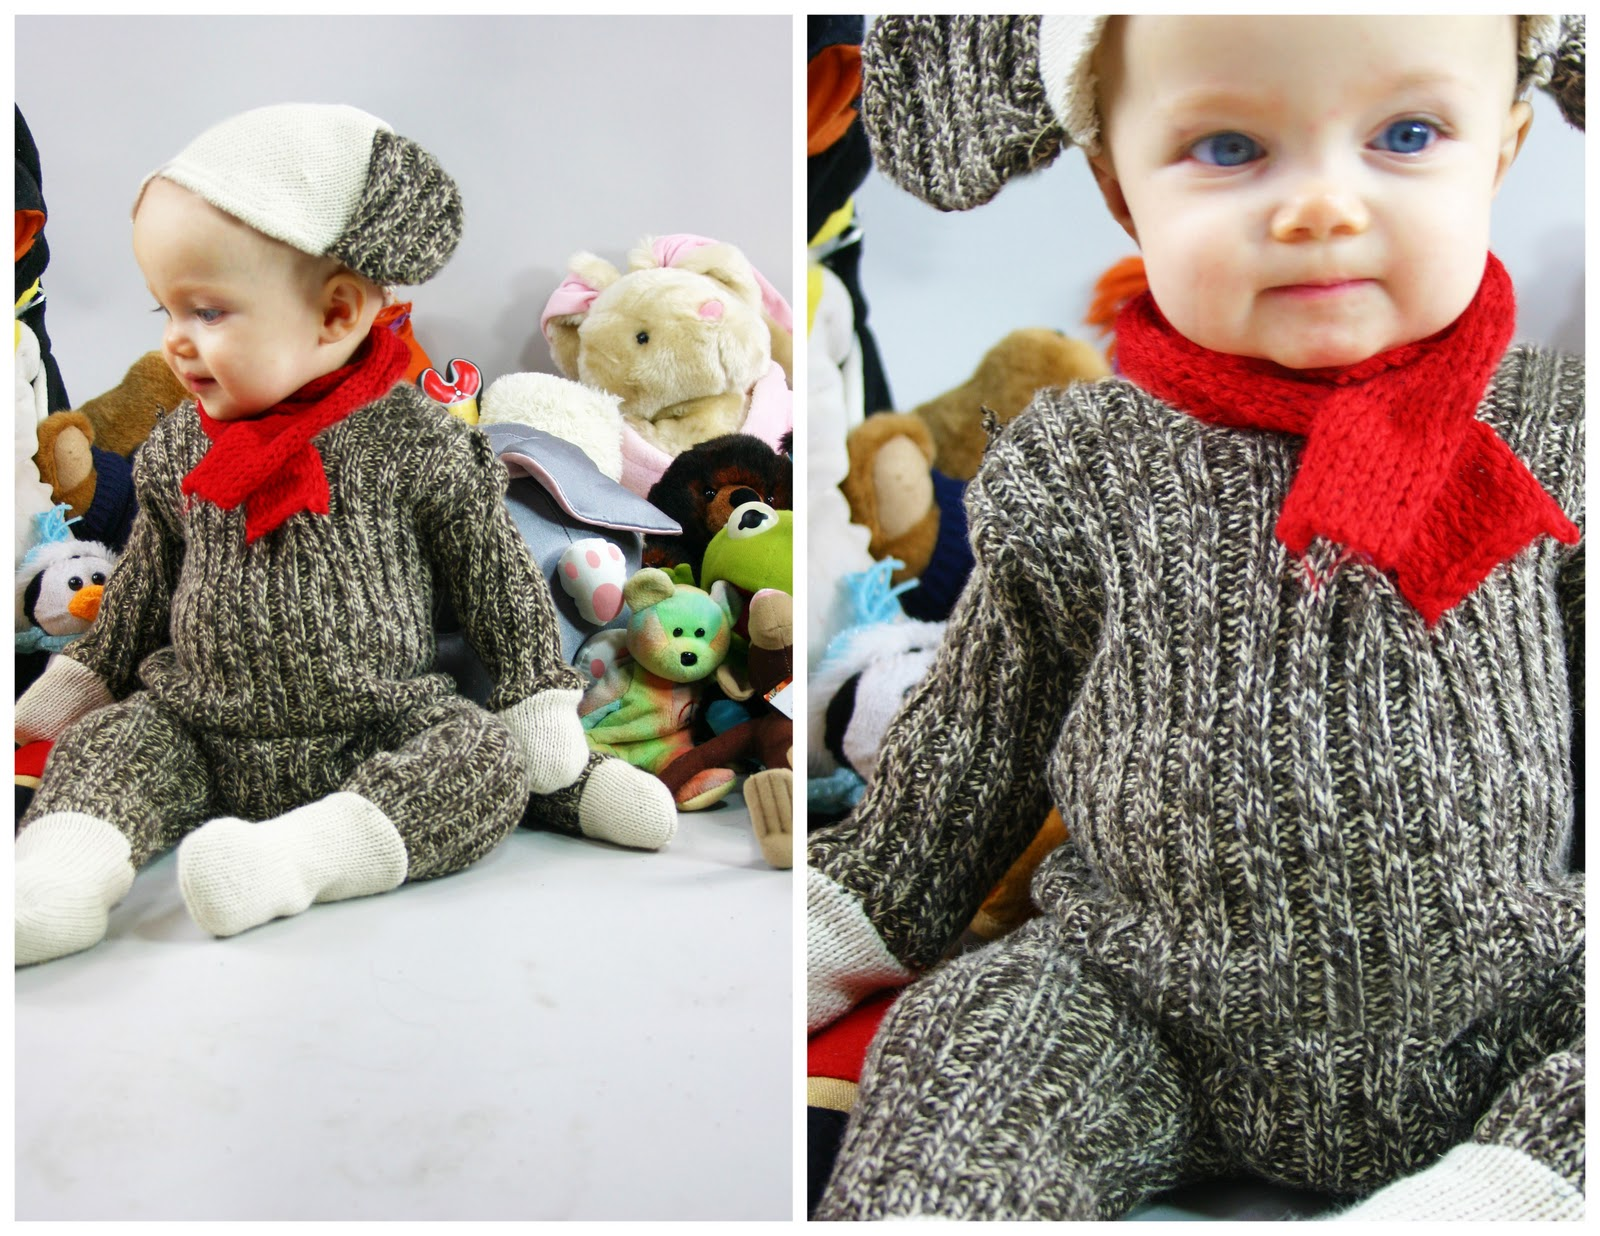 grosgrain thrift store thursday sock monkey baby costume